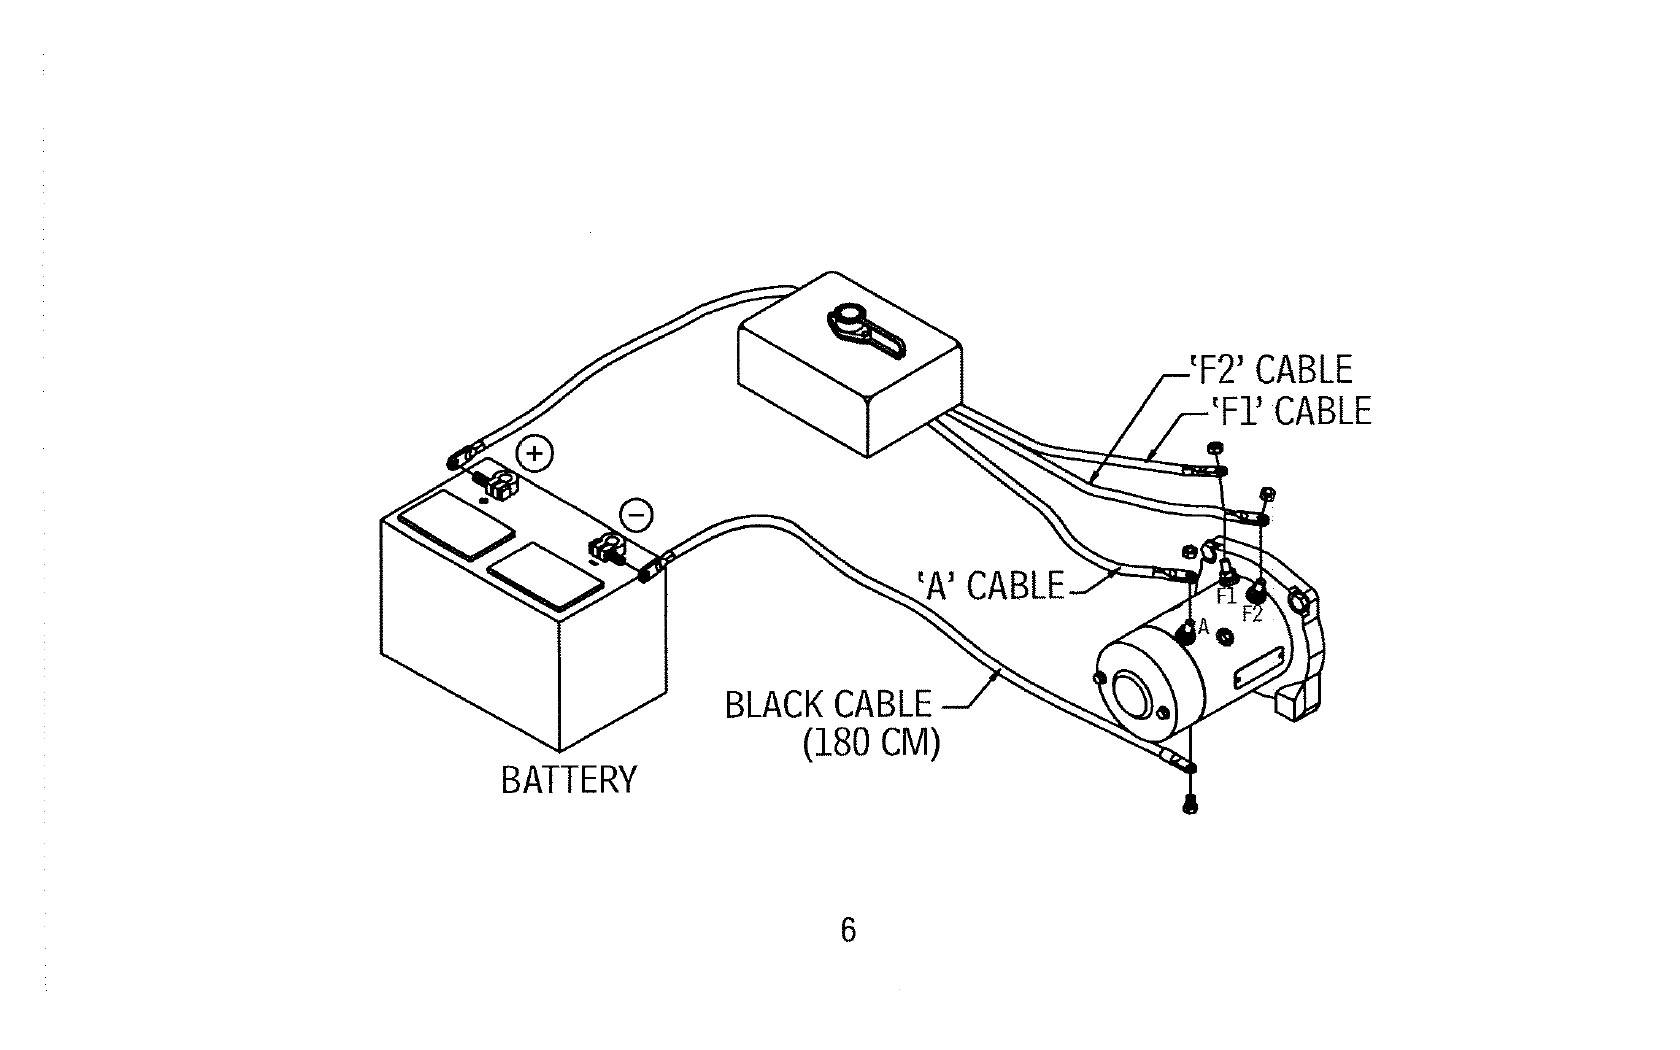 moving warn solenoid to engine bay (fjc)